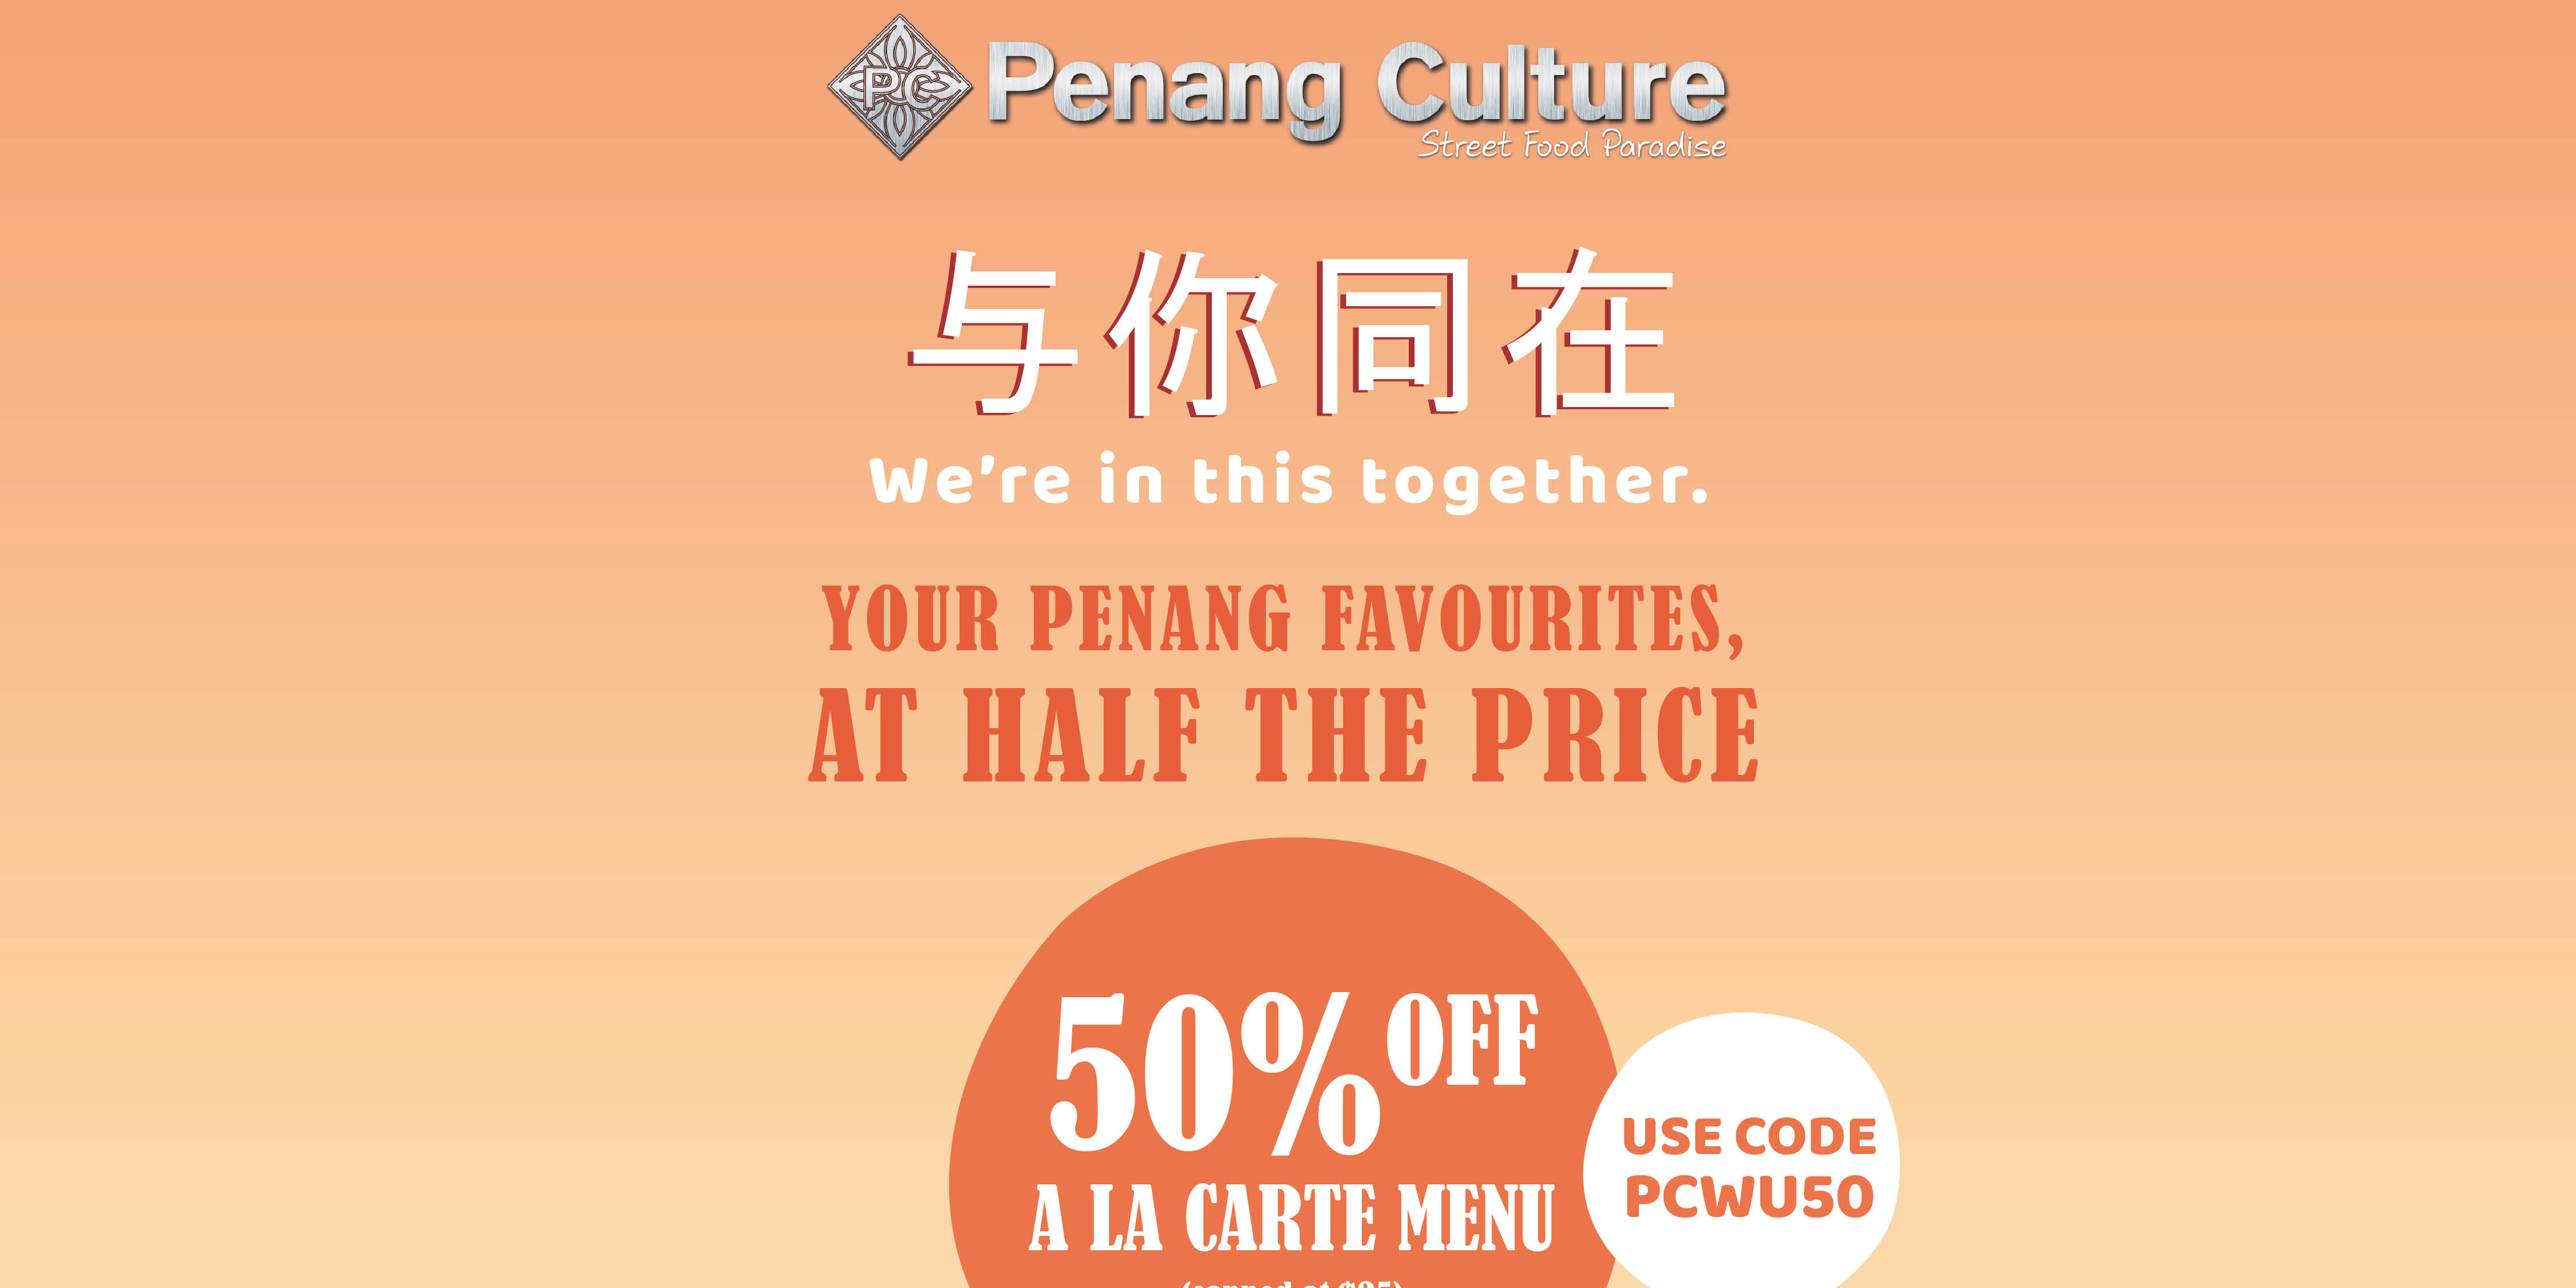 50% OFF Your Penang Favourites Only at Penang Culture Till 8 August!